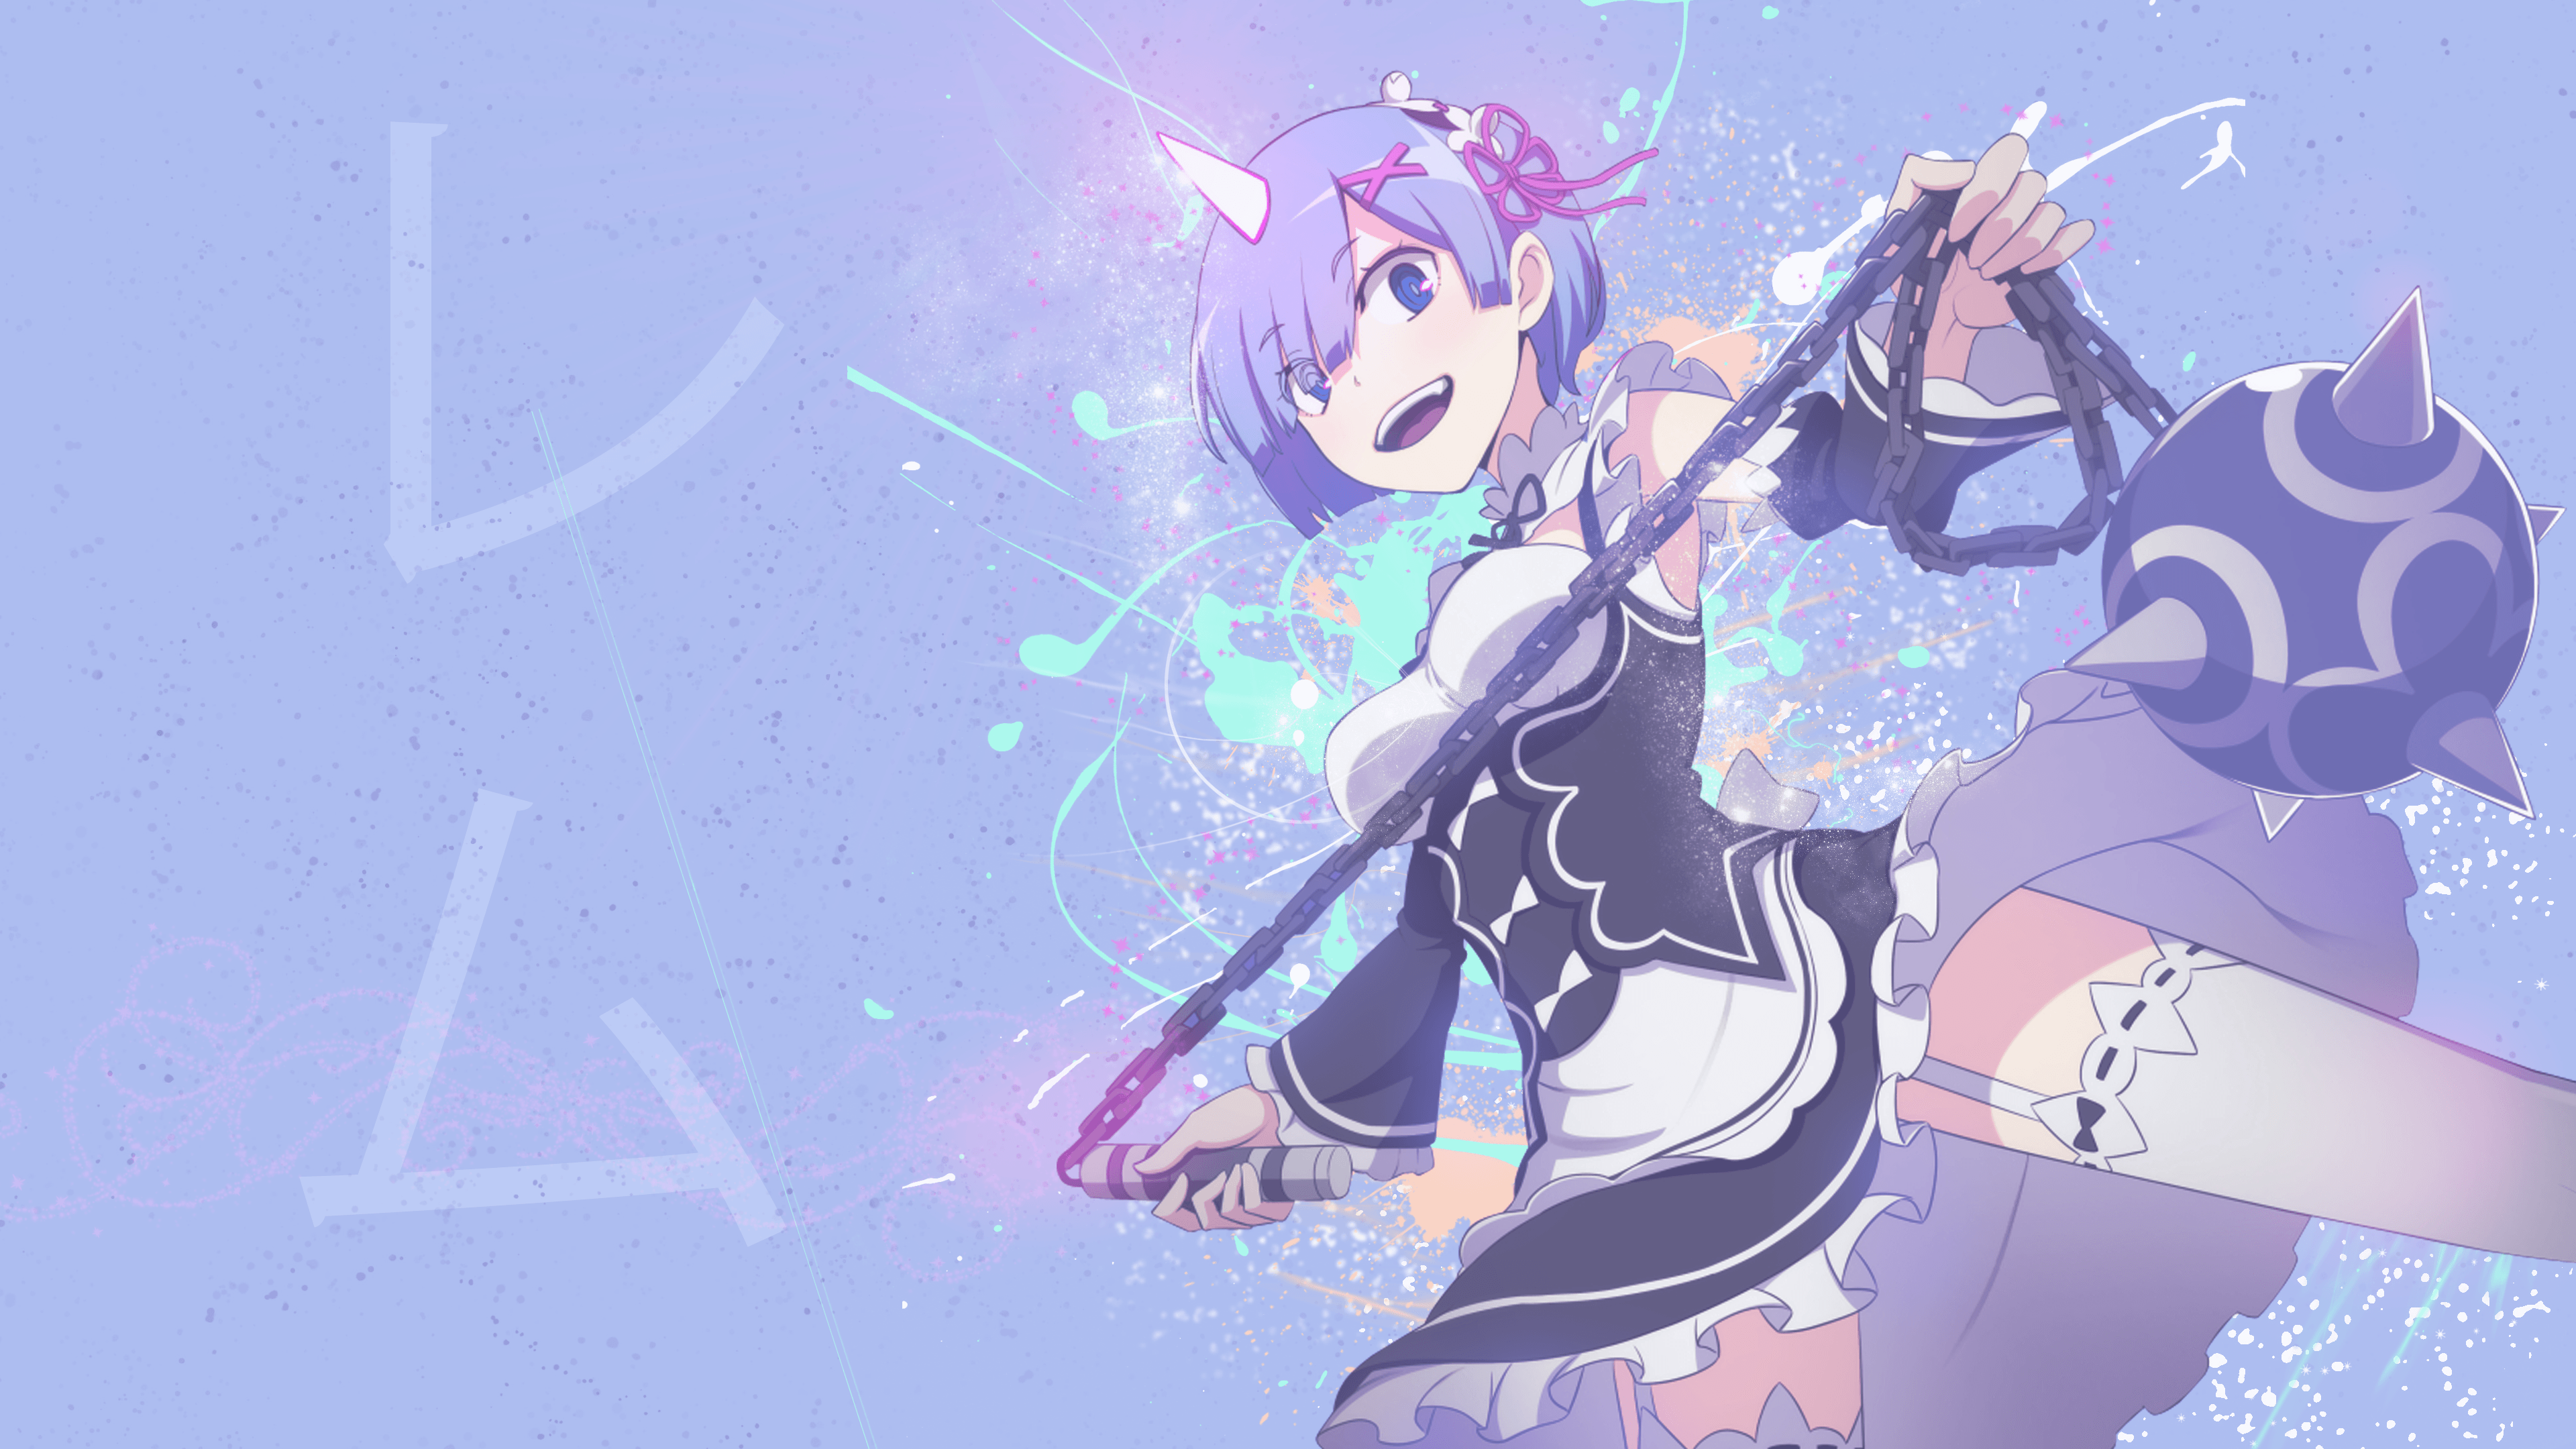 Rem Re:Zero wallpapers